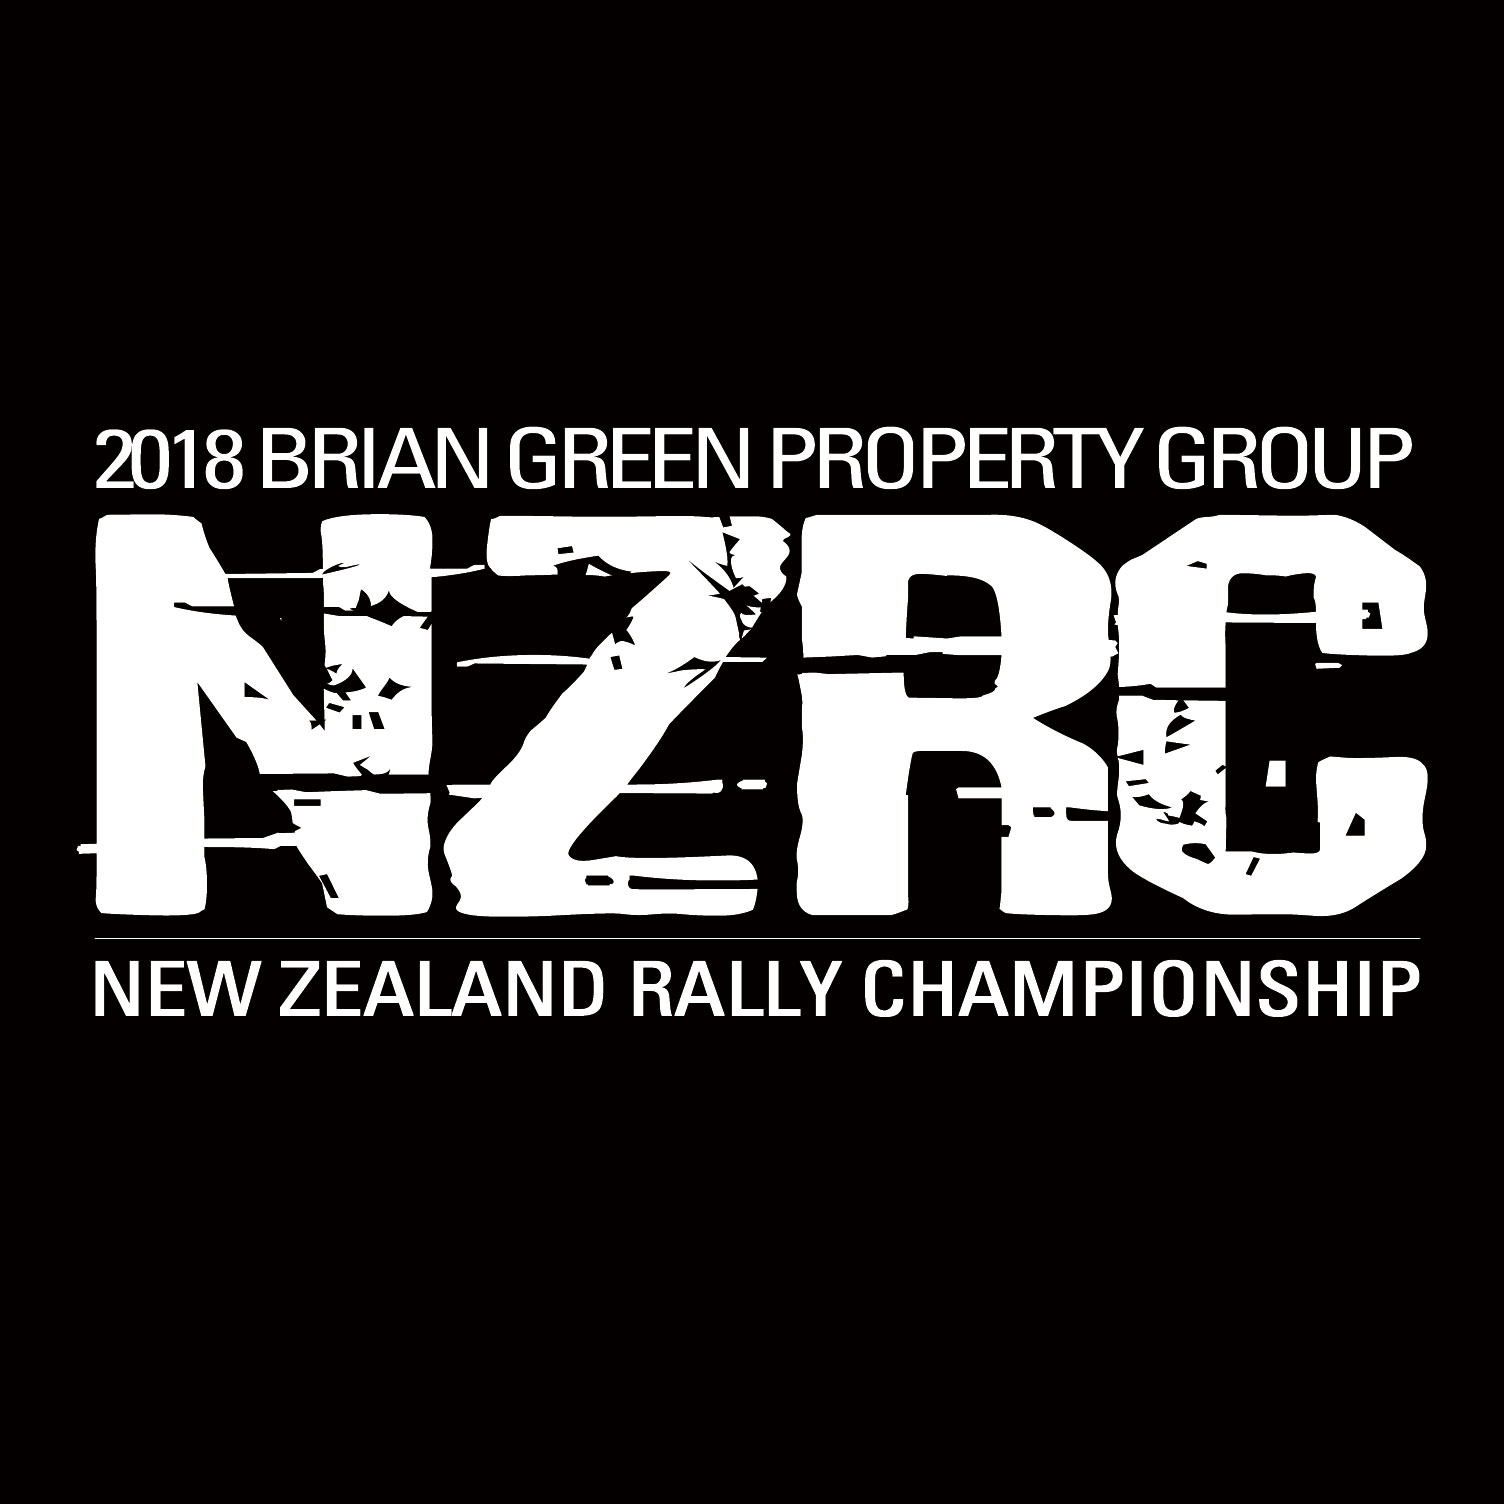 Hunt the champion and maiden victory for Summerfield | :: Brian Green Property Group New Zealand Rally Championship ::